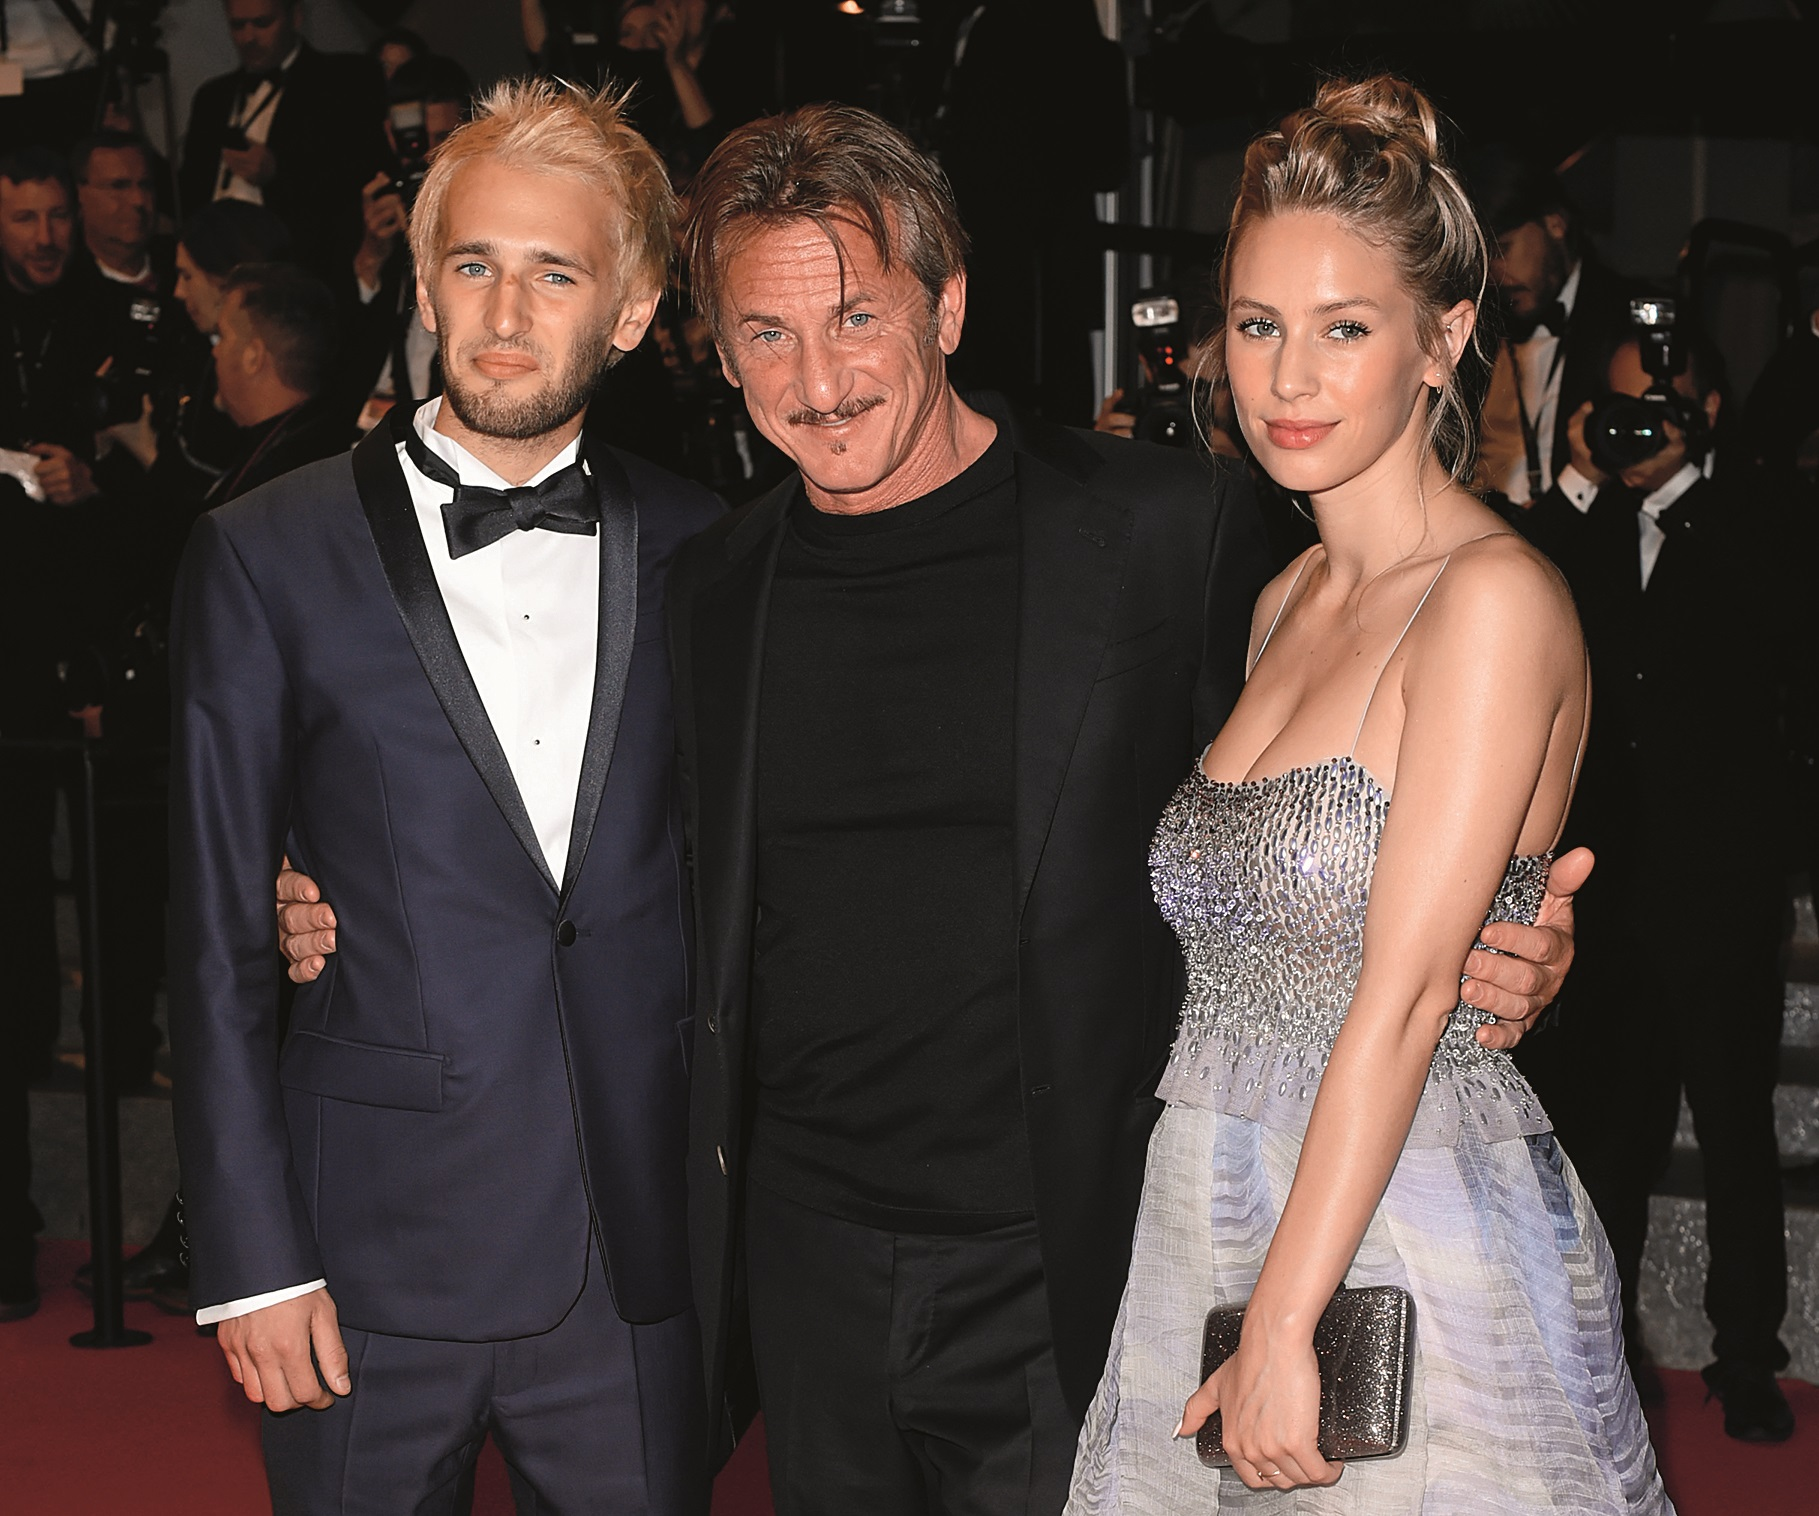 /Hopper Jack Penn, Sean Penn and Dylan Penn 'The Last Face' premiere, 69th Cannes Film Festival, France - 20 May 2016,Image: 286213526, License: Rights-managed, Restrictions: , Model Release: no, Credit line: David Fisher / Shutterstock Editorial / Profimedia